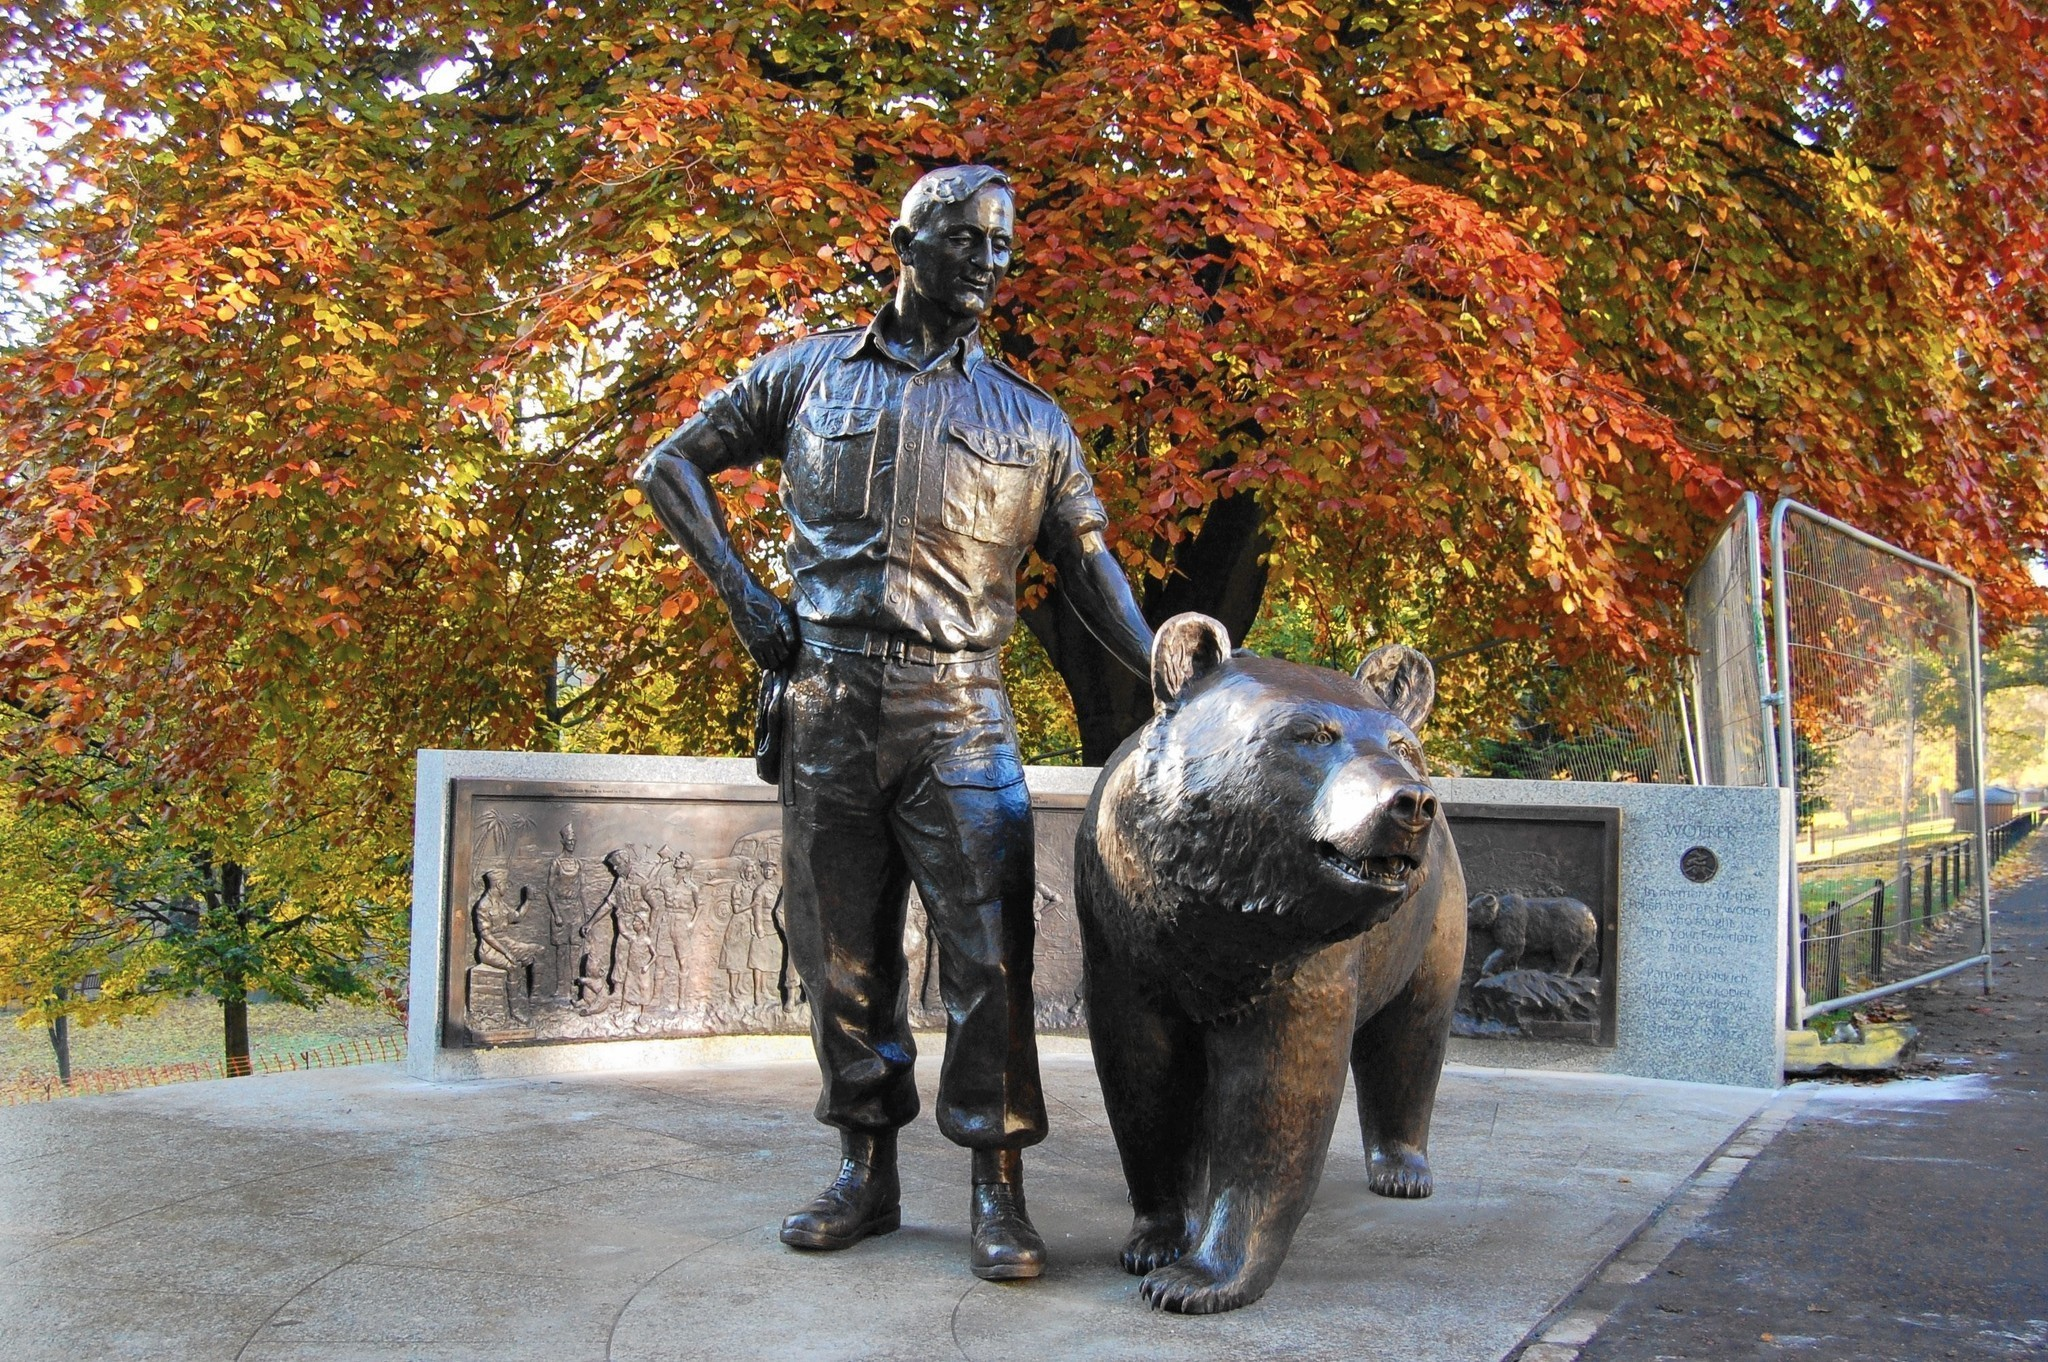 wojtek polands wwii fighting bear honored with